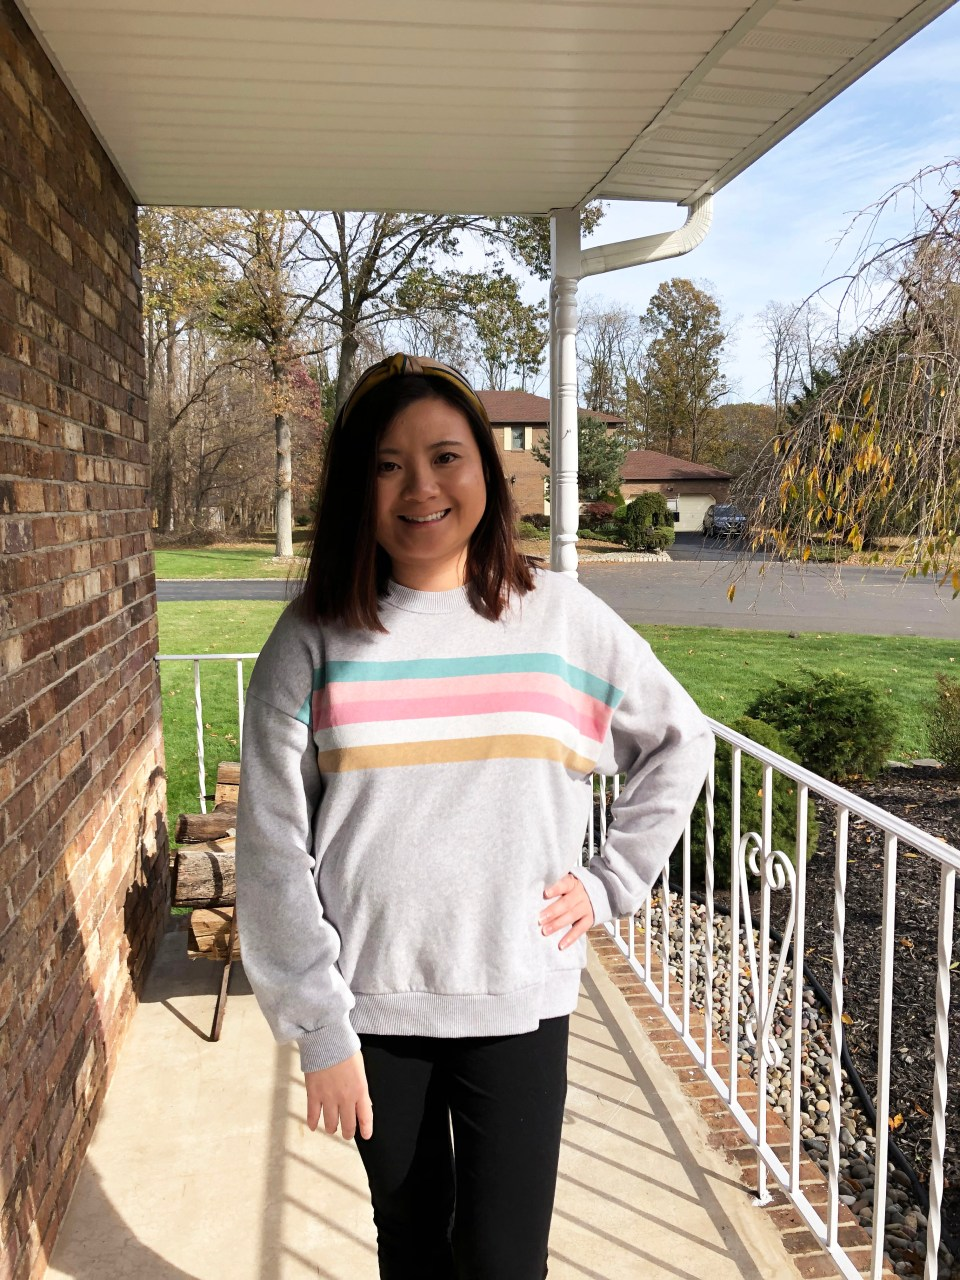 Pastel Striped Sweatshirt 12